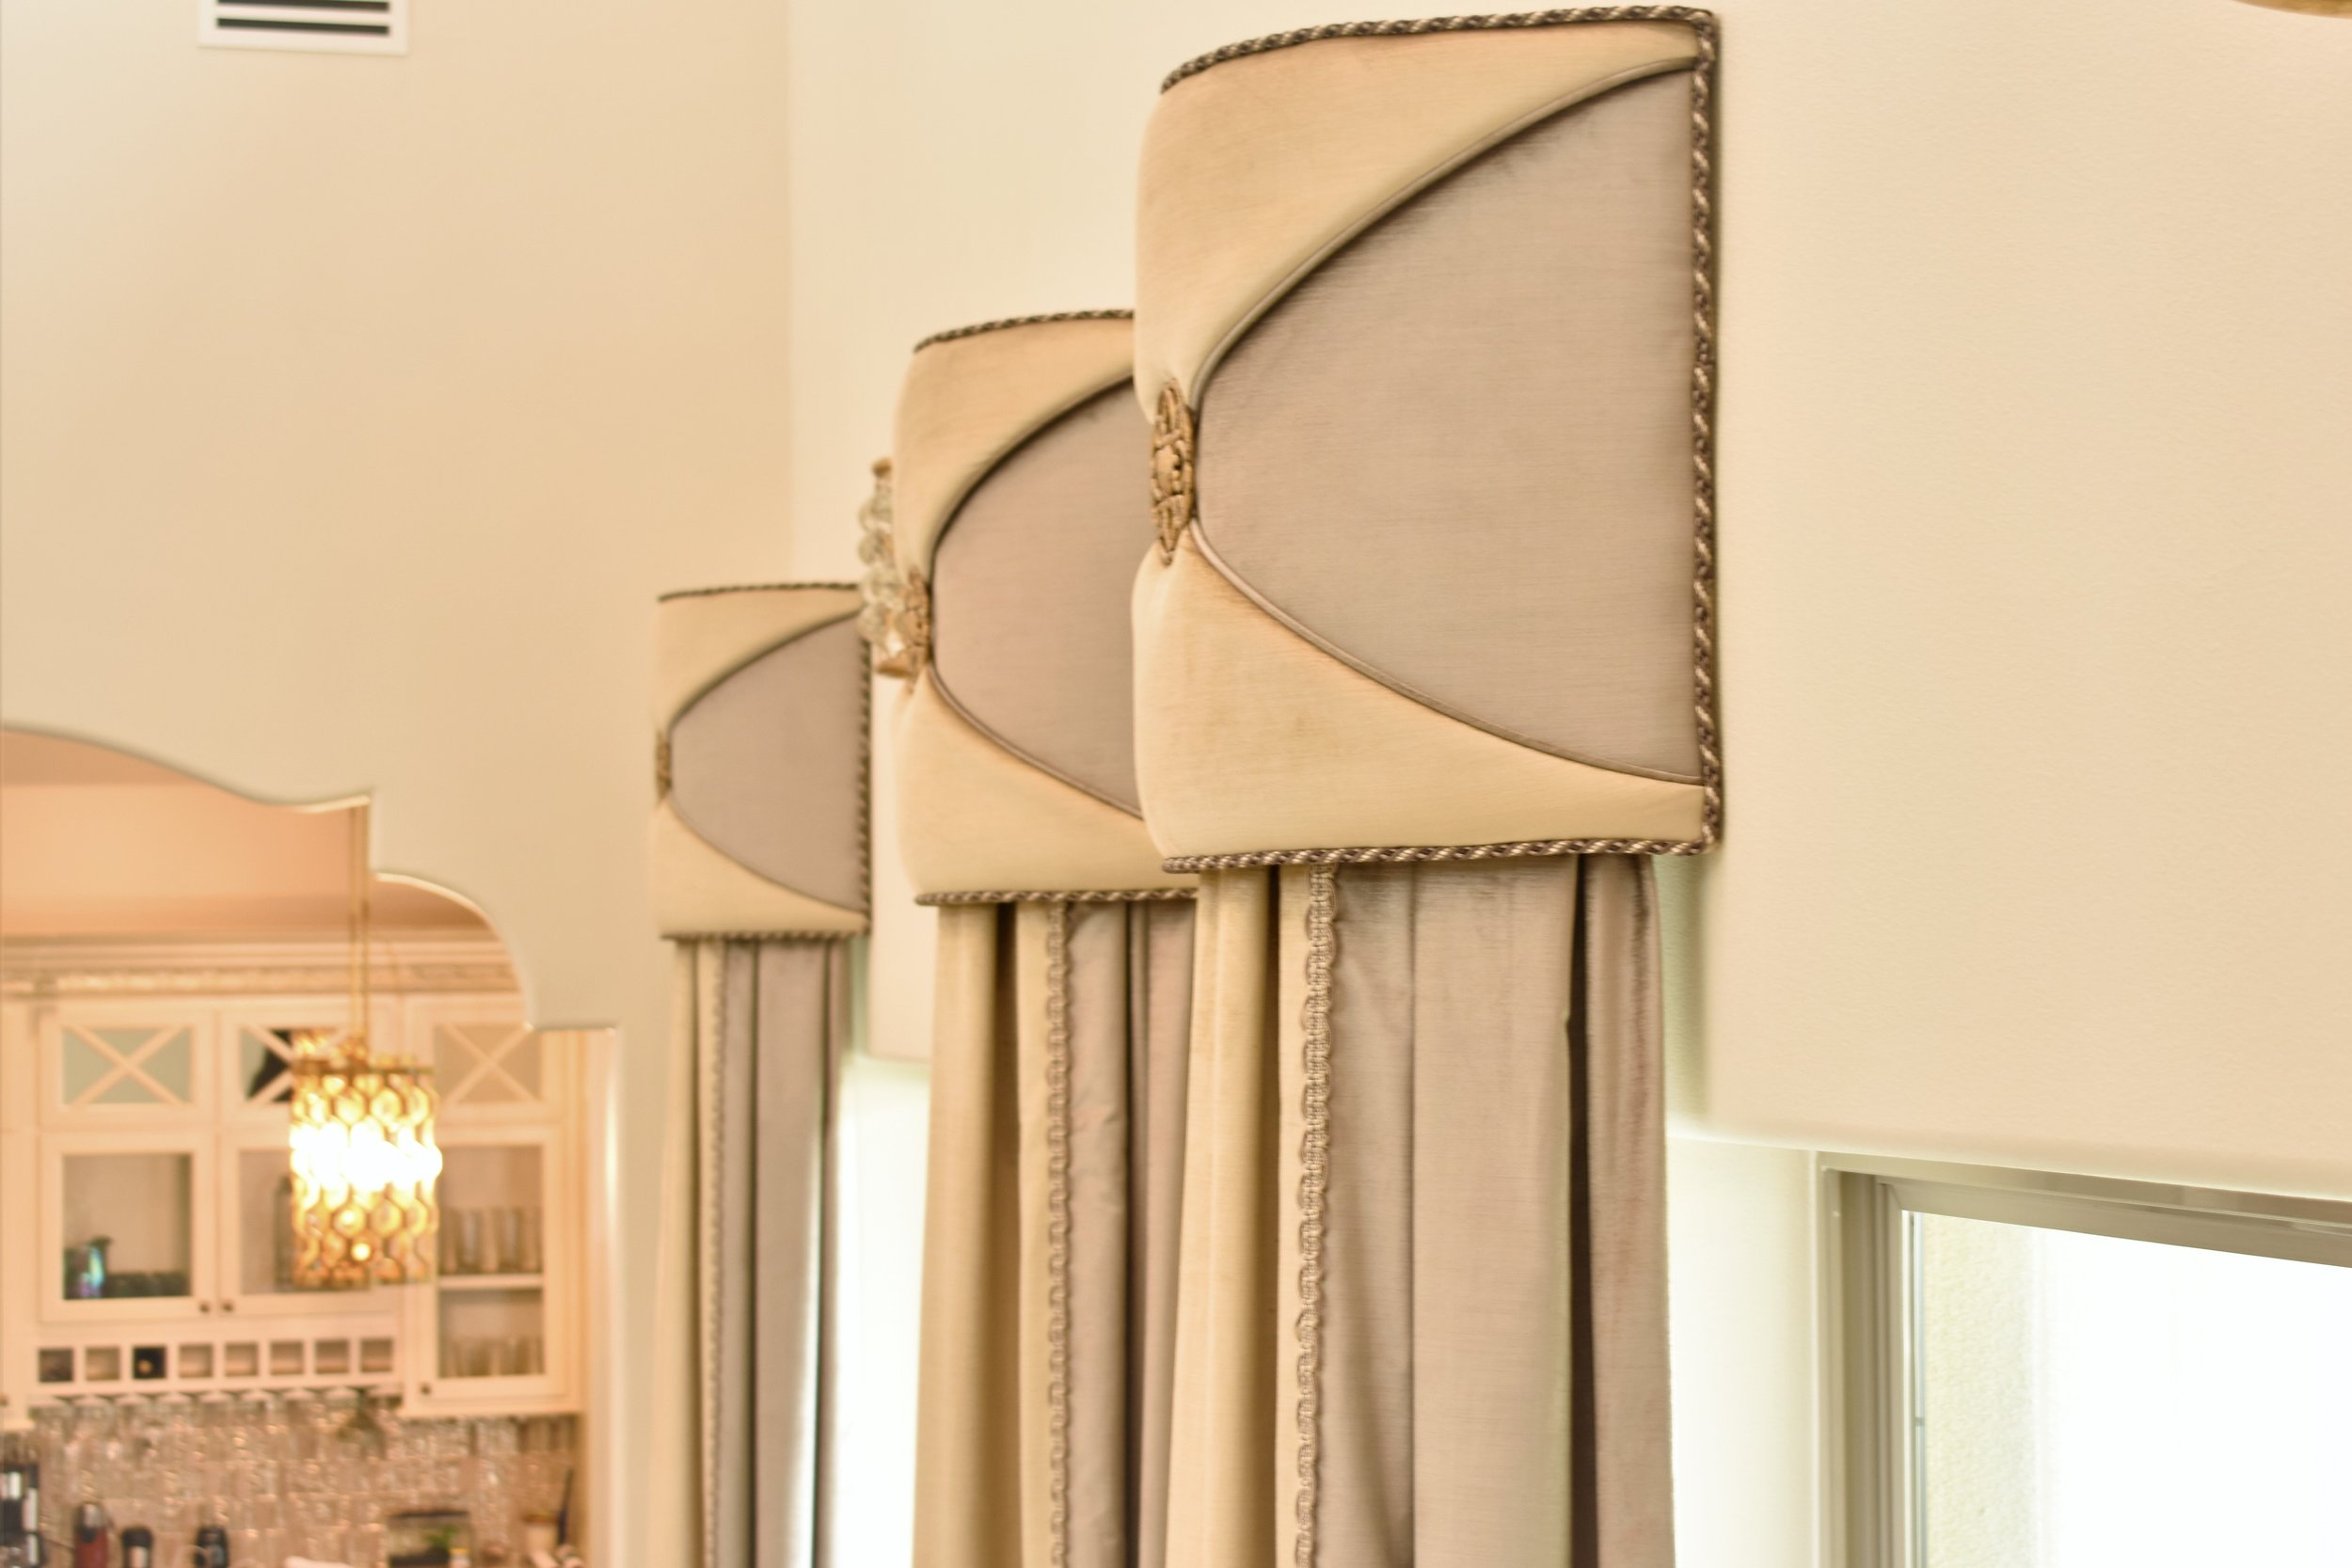 Custom Design Window Treatments by Alejandra Canales Ac Design Studio Custom Drapes and Shades Motorized Window coverings in McAllen Texas (5).JPG